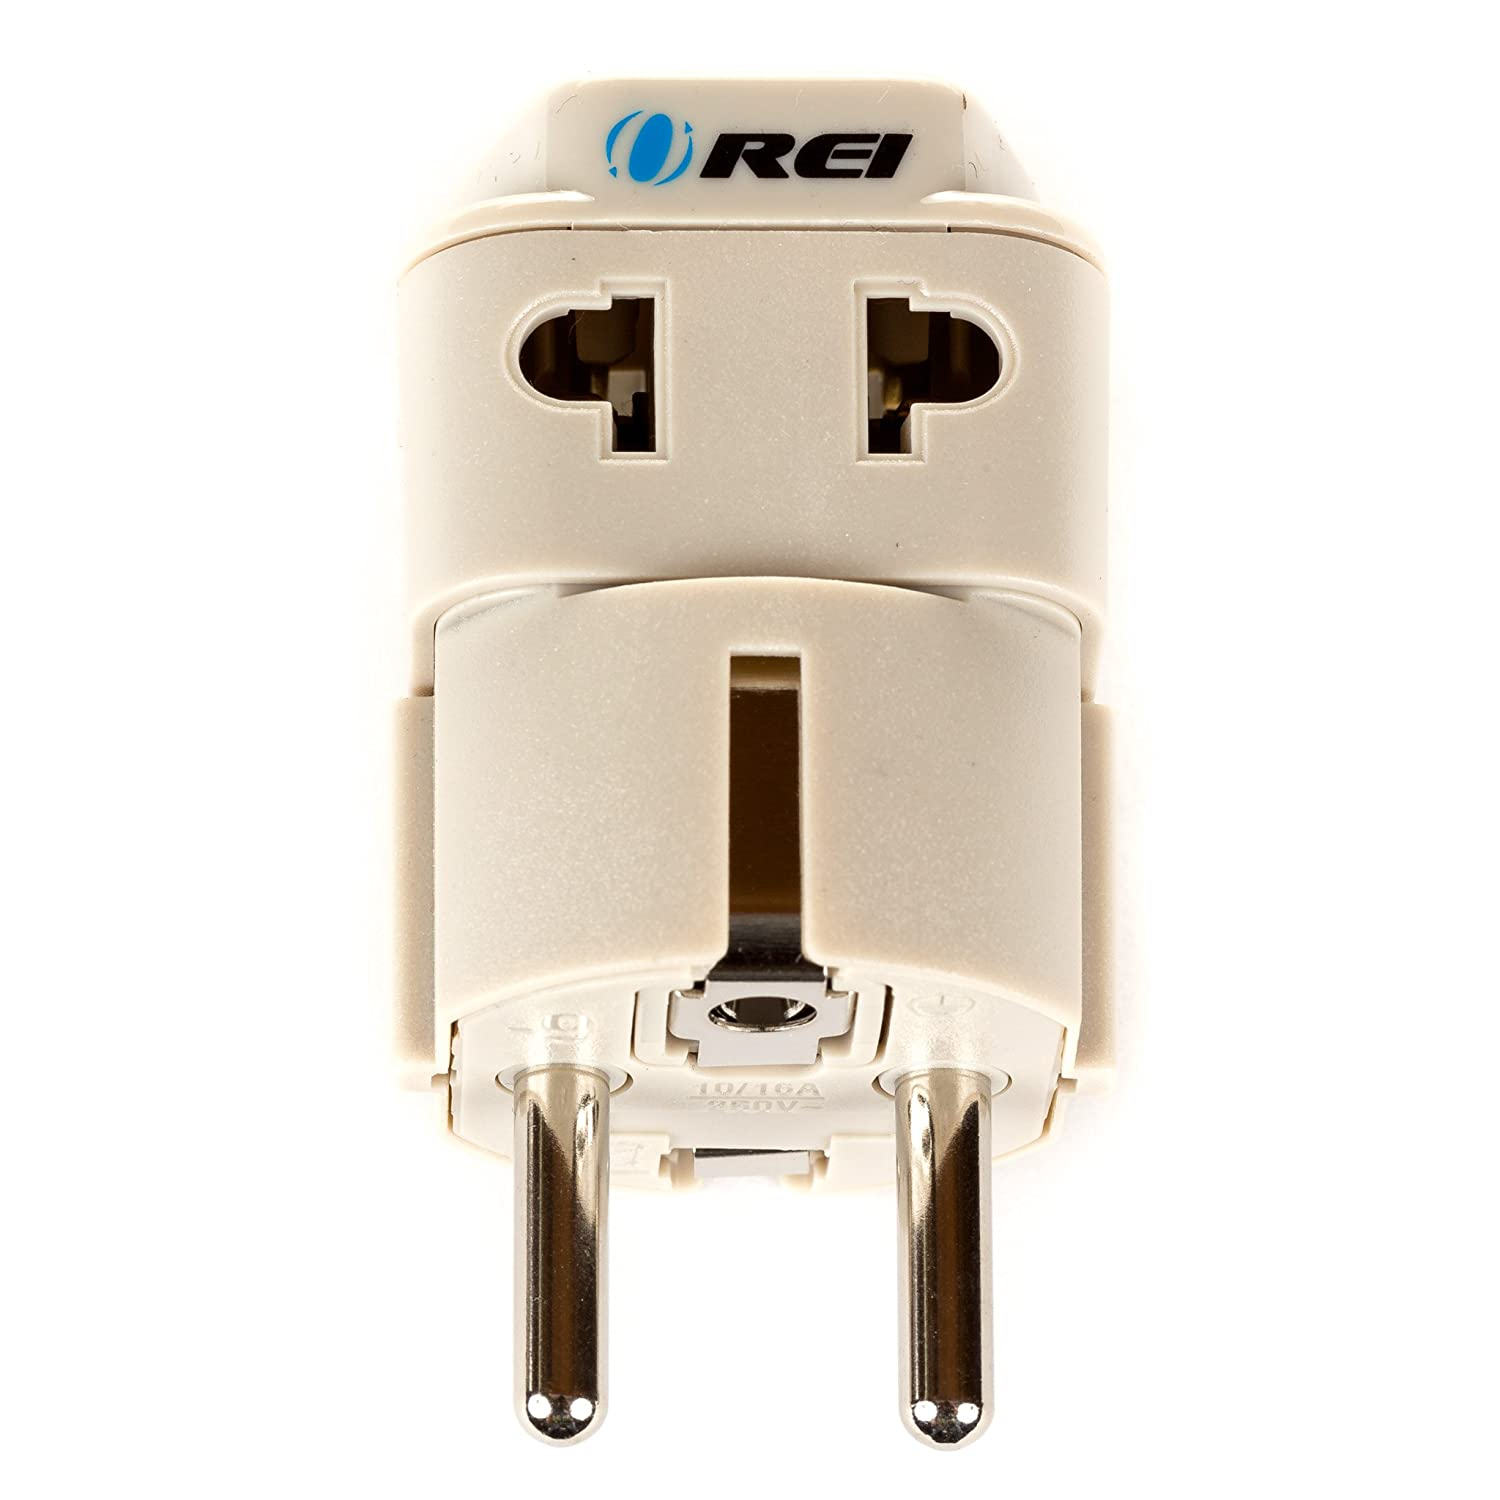 Orei European Plug Adapter Schuko Type E F For Germany Wiring Regulations Allow You To Convert Any Socket On The Circuit France Europe Russia Grounded 2 In 1 Home Audio Theater